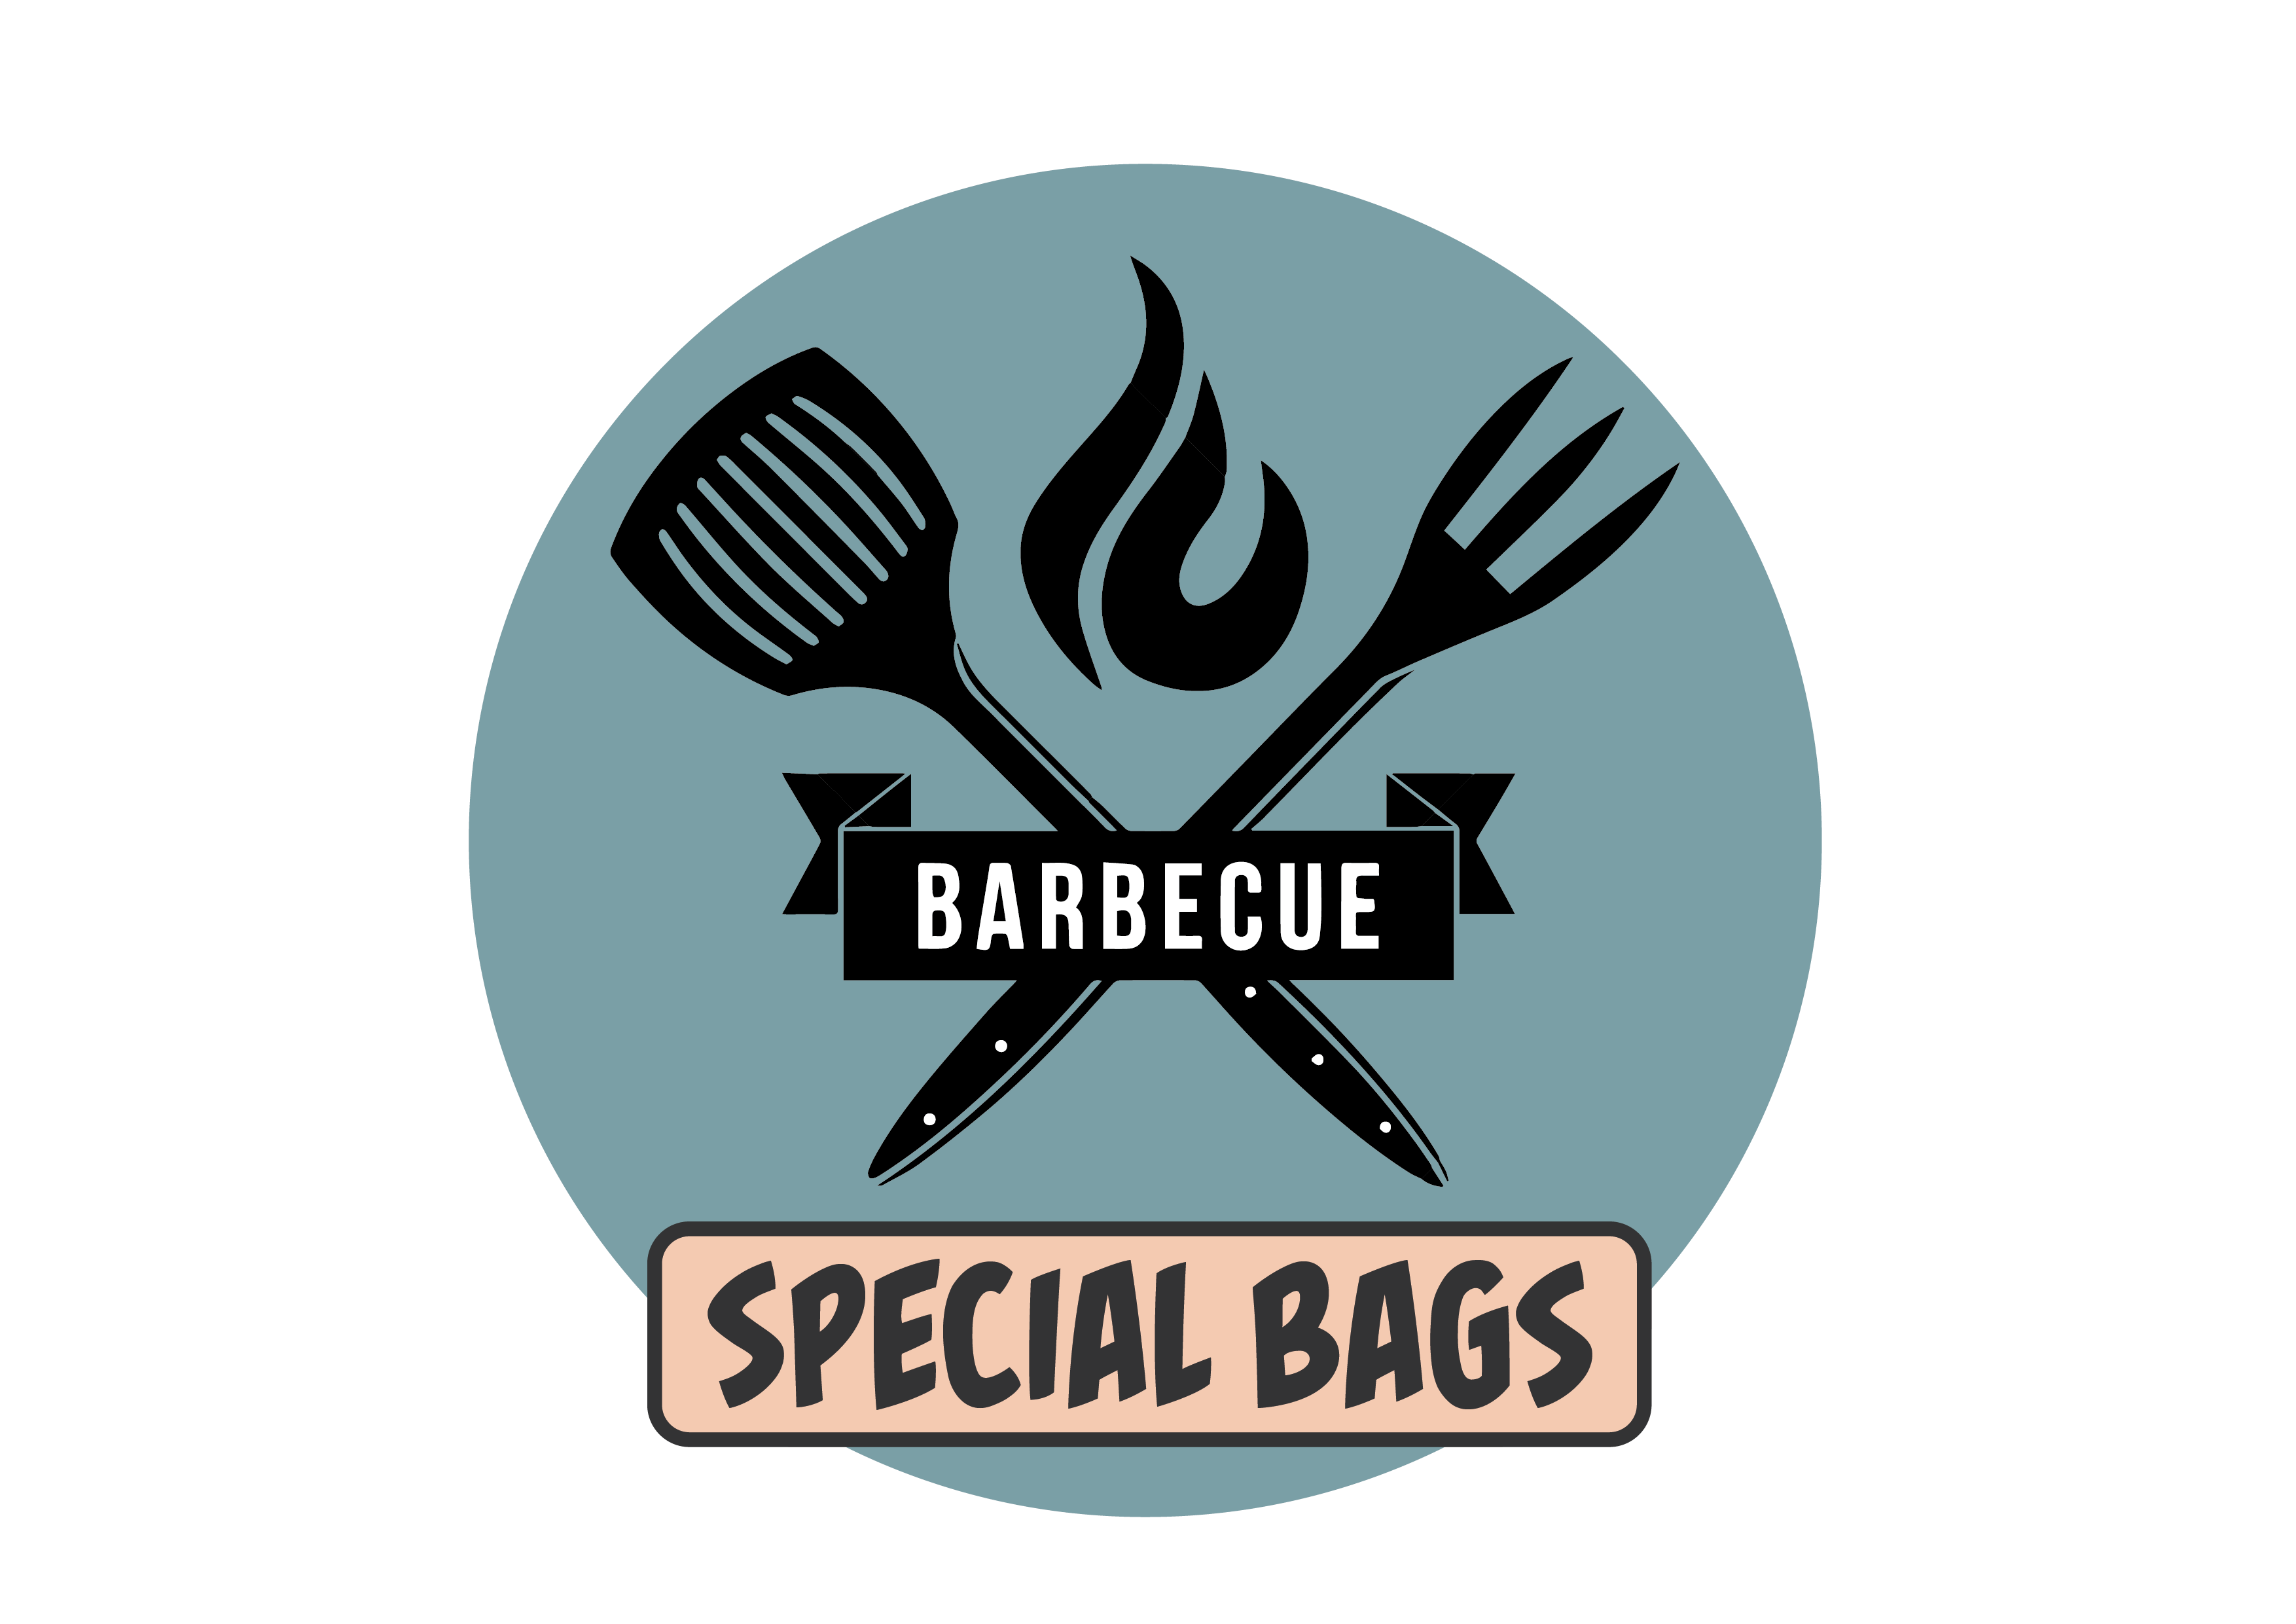 special bags-01